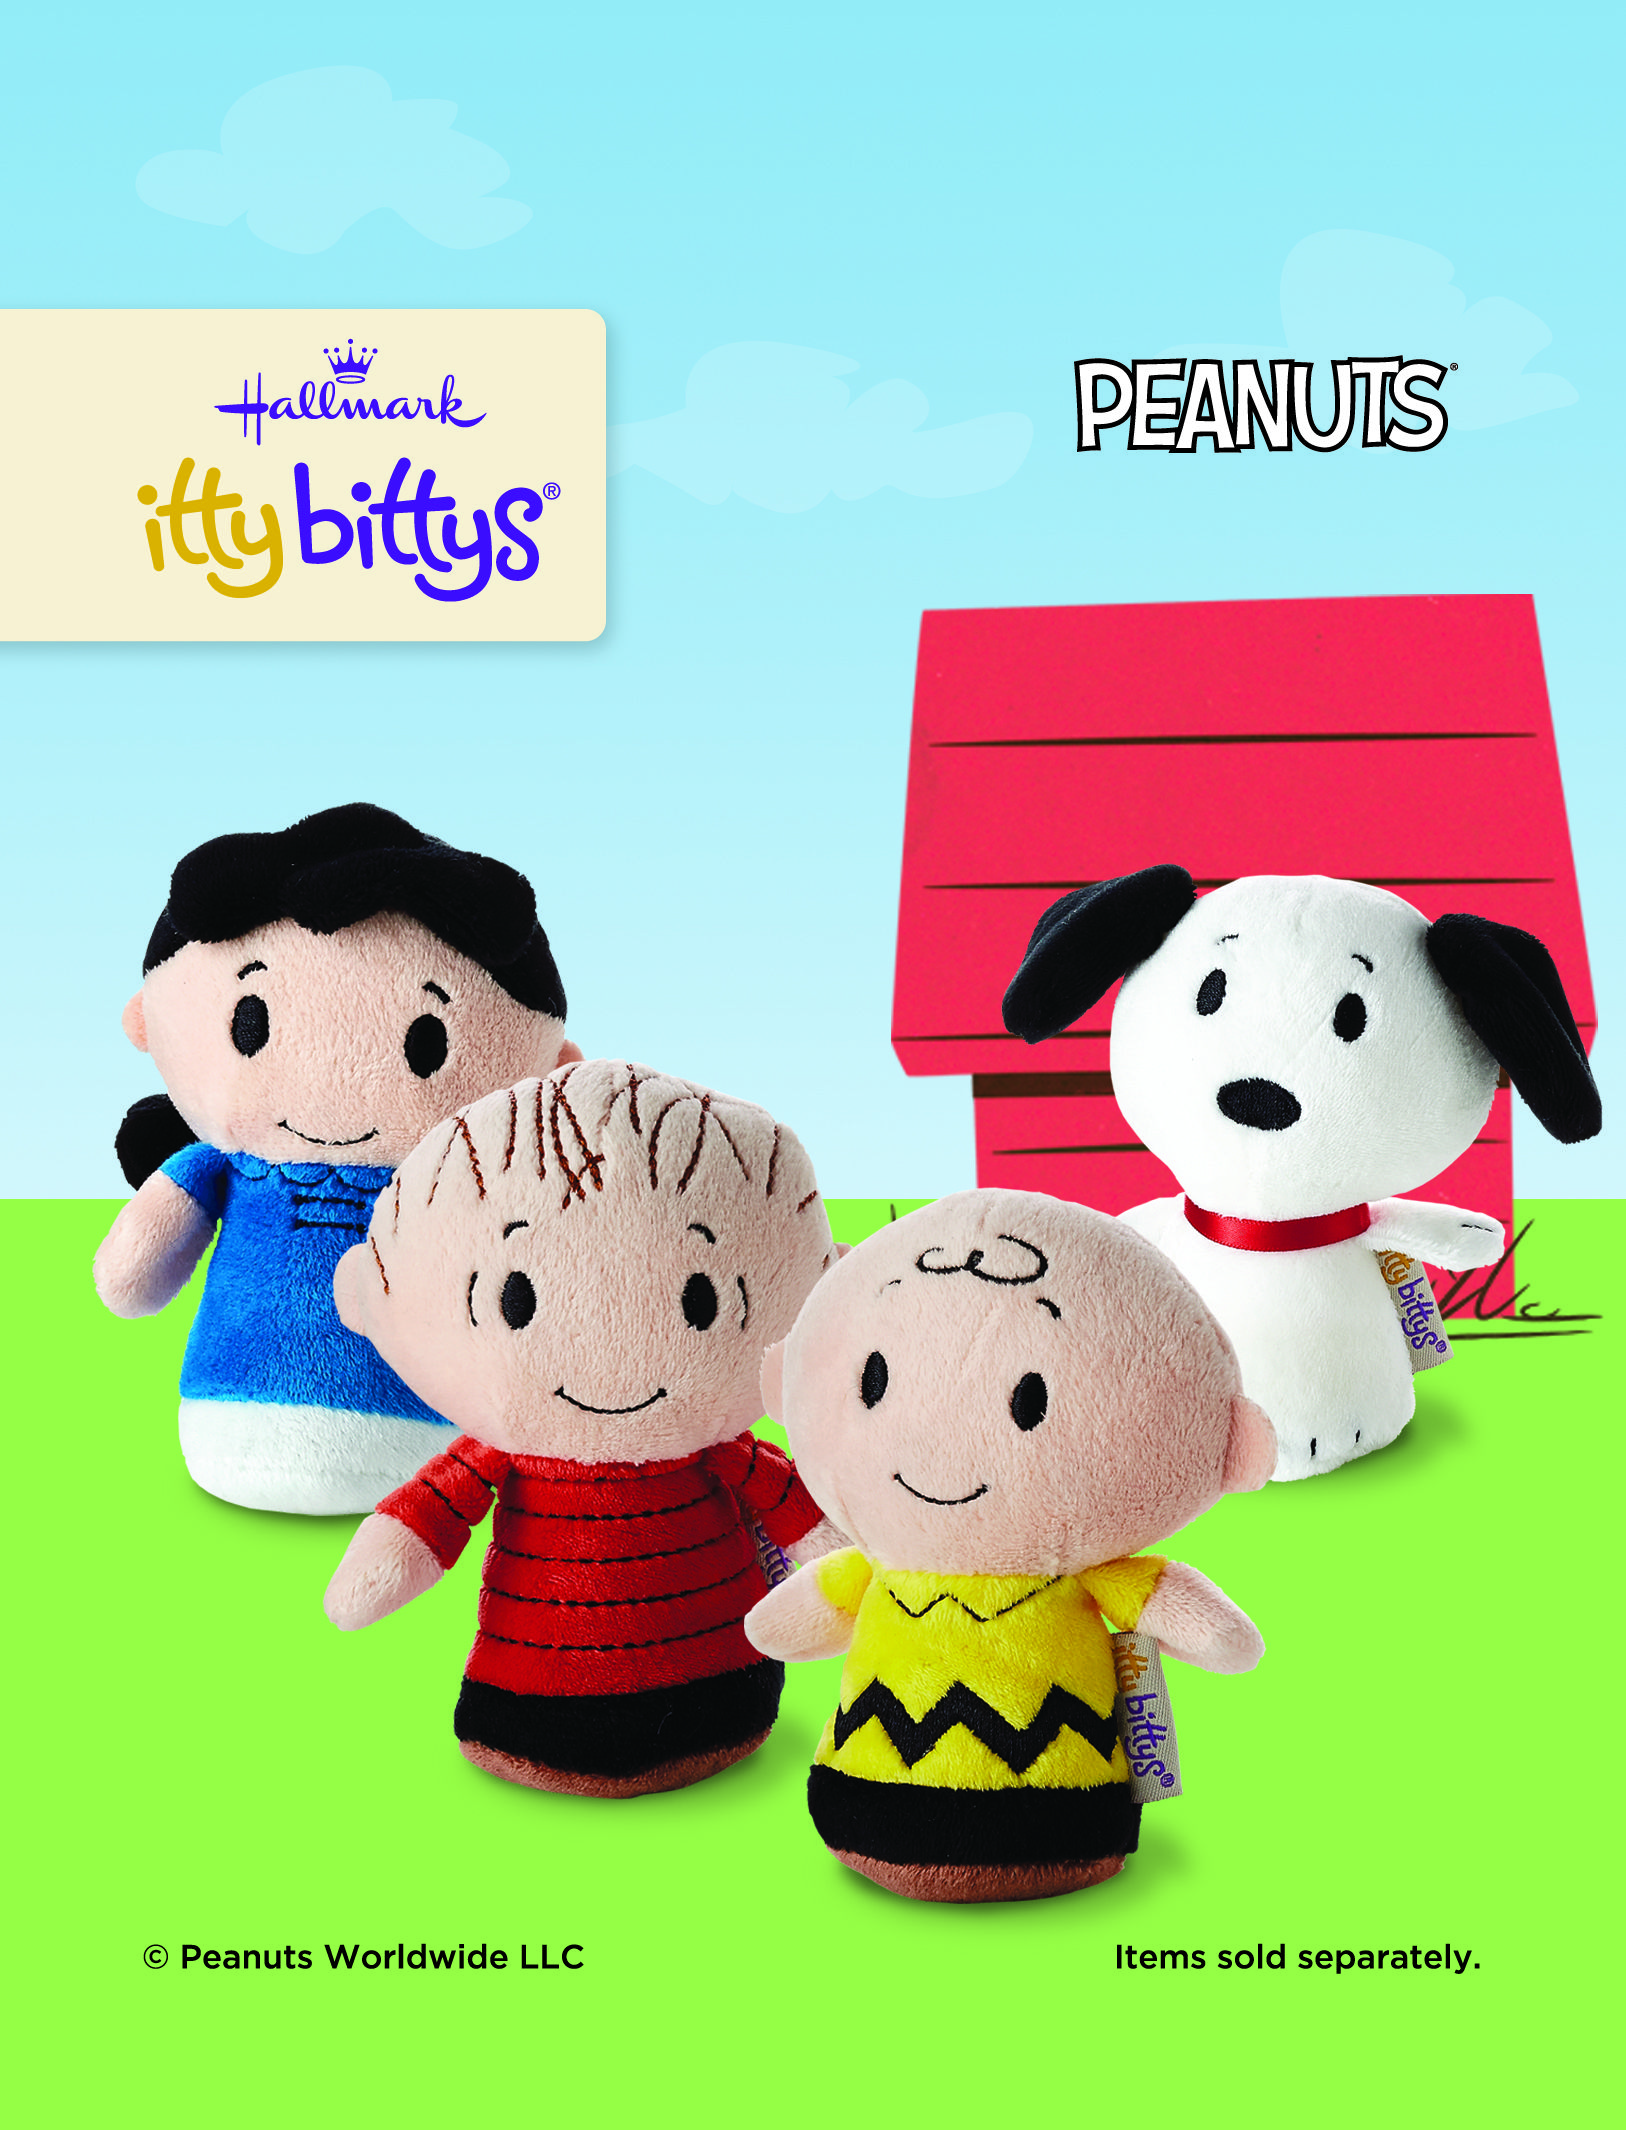 d3249e1dd26e8 The Peanuts gang is all here! Charlie